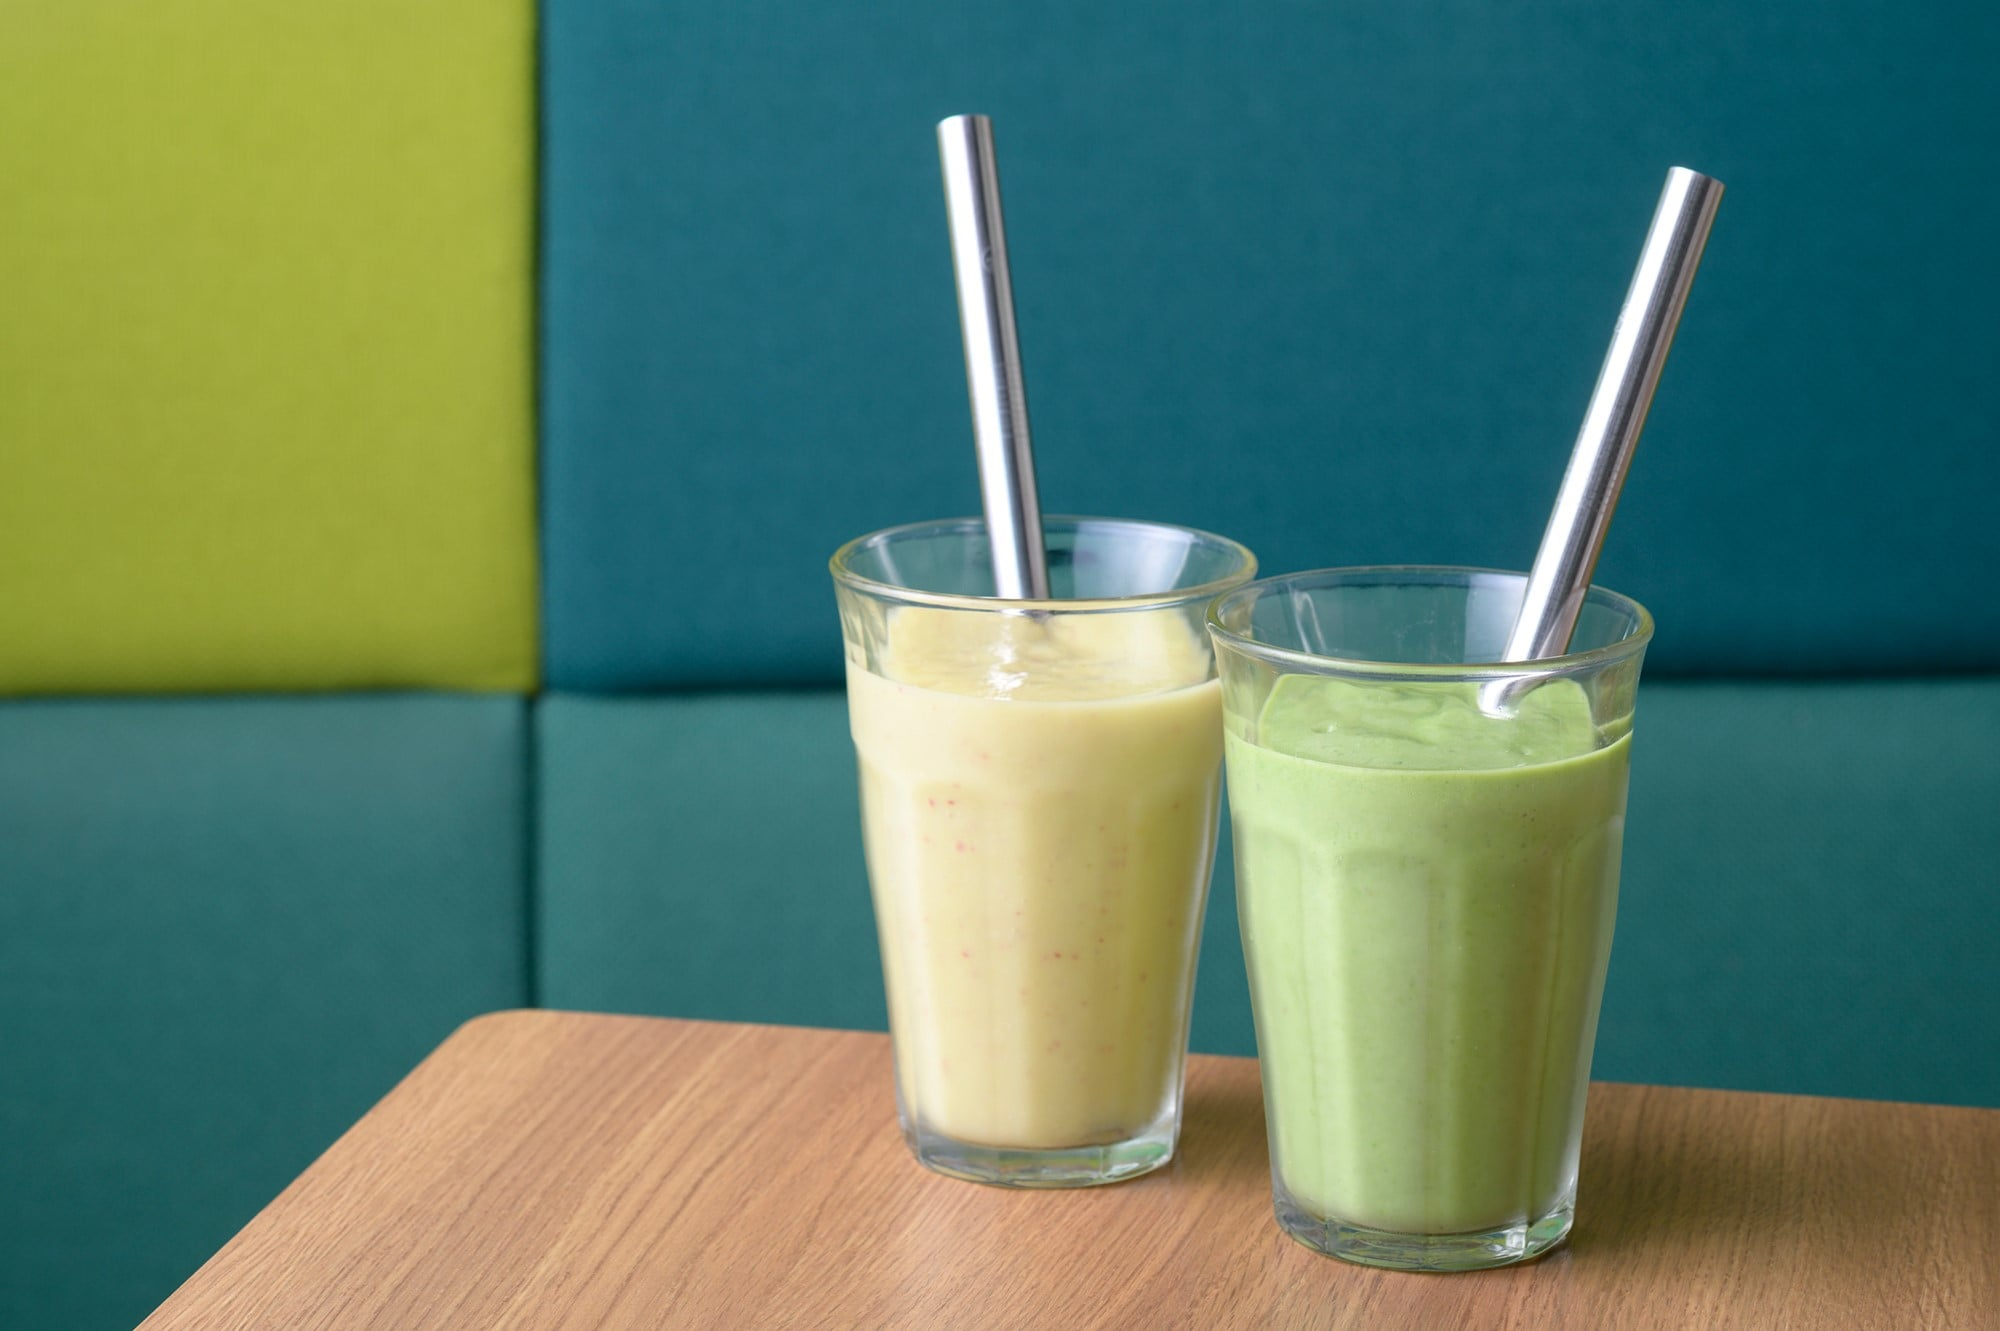 The Beauty Fiber Smoothie is made of ginger and avocado and the Green Power Smoothie is made of spinach and komatsuna (Japanese mustard spinach).